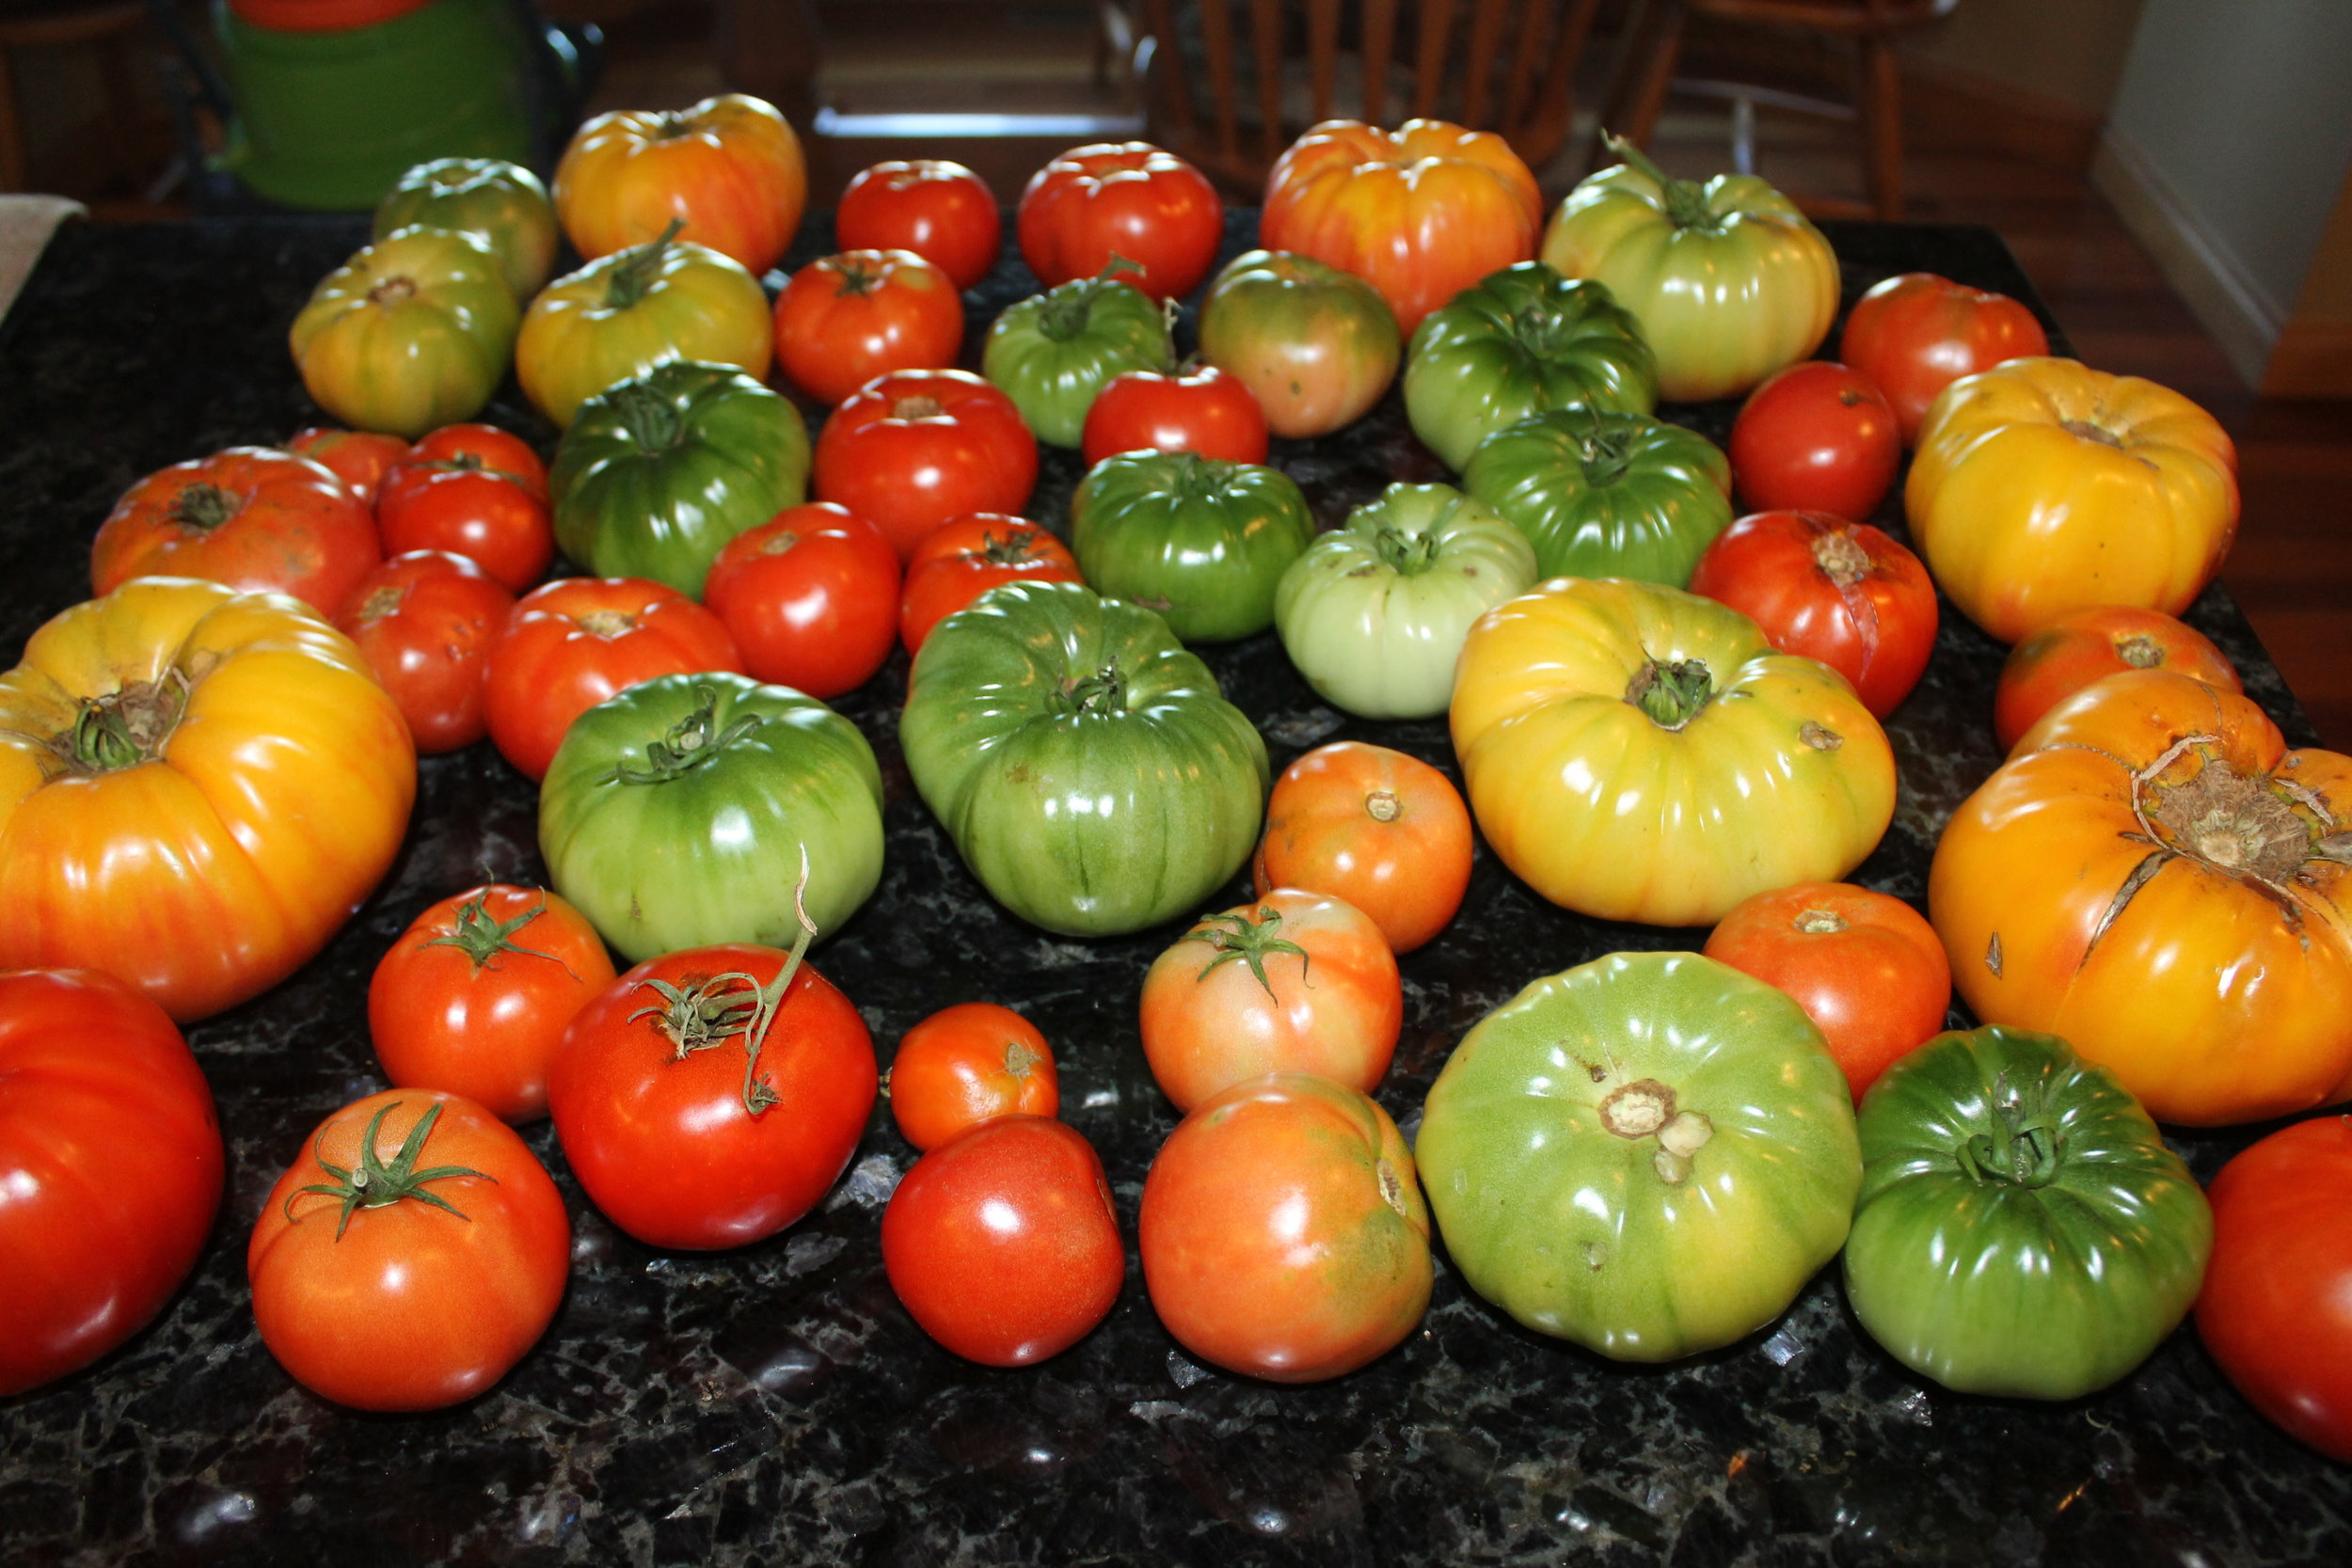 Dozens of Tomatoes decorated my kitchen counter in early October.